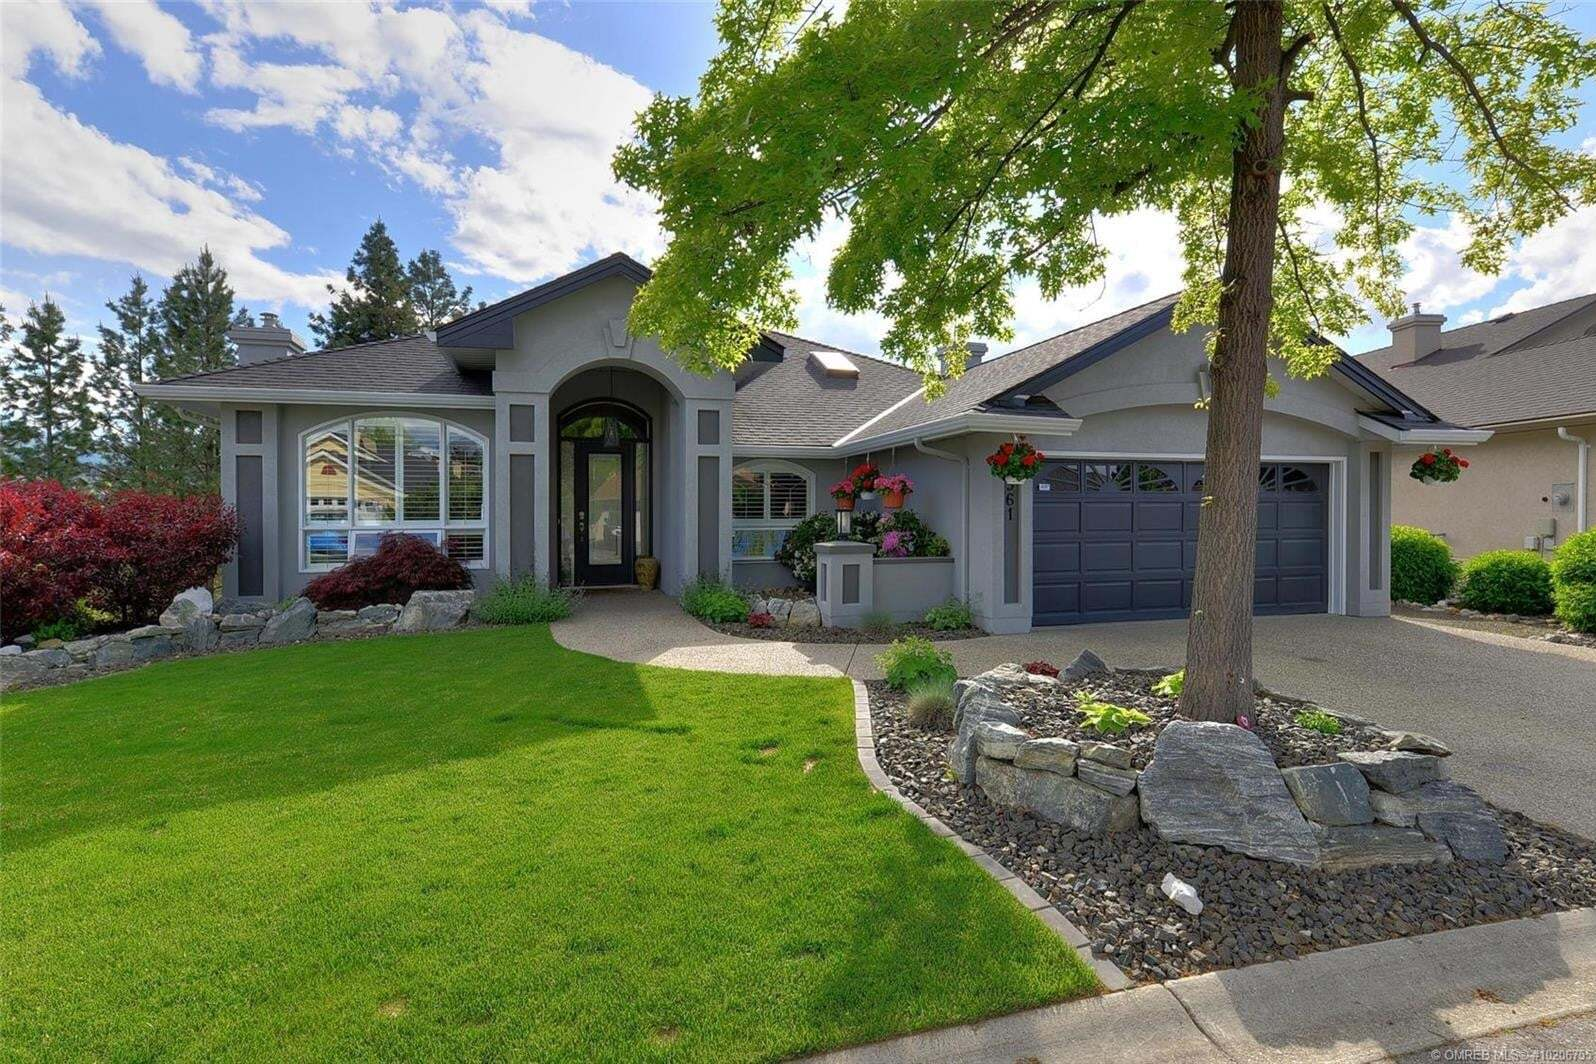 House for sale at 3961 Gallaghers Circ Kelowna British Columbia - MLS: 10206755